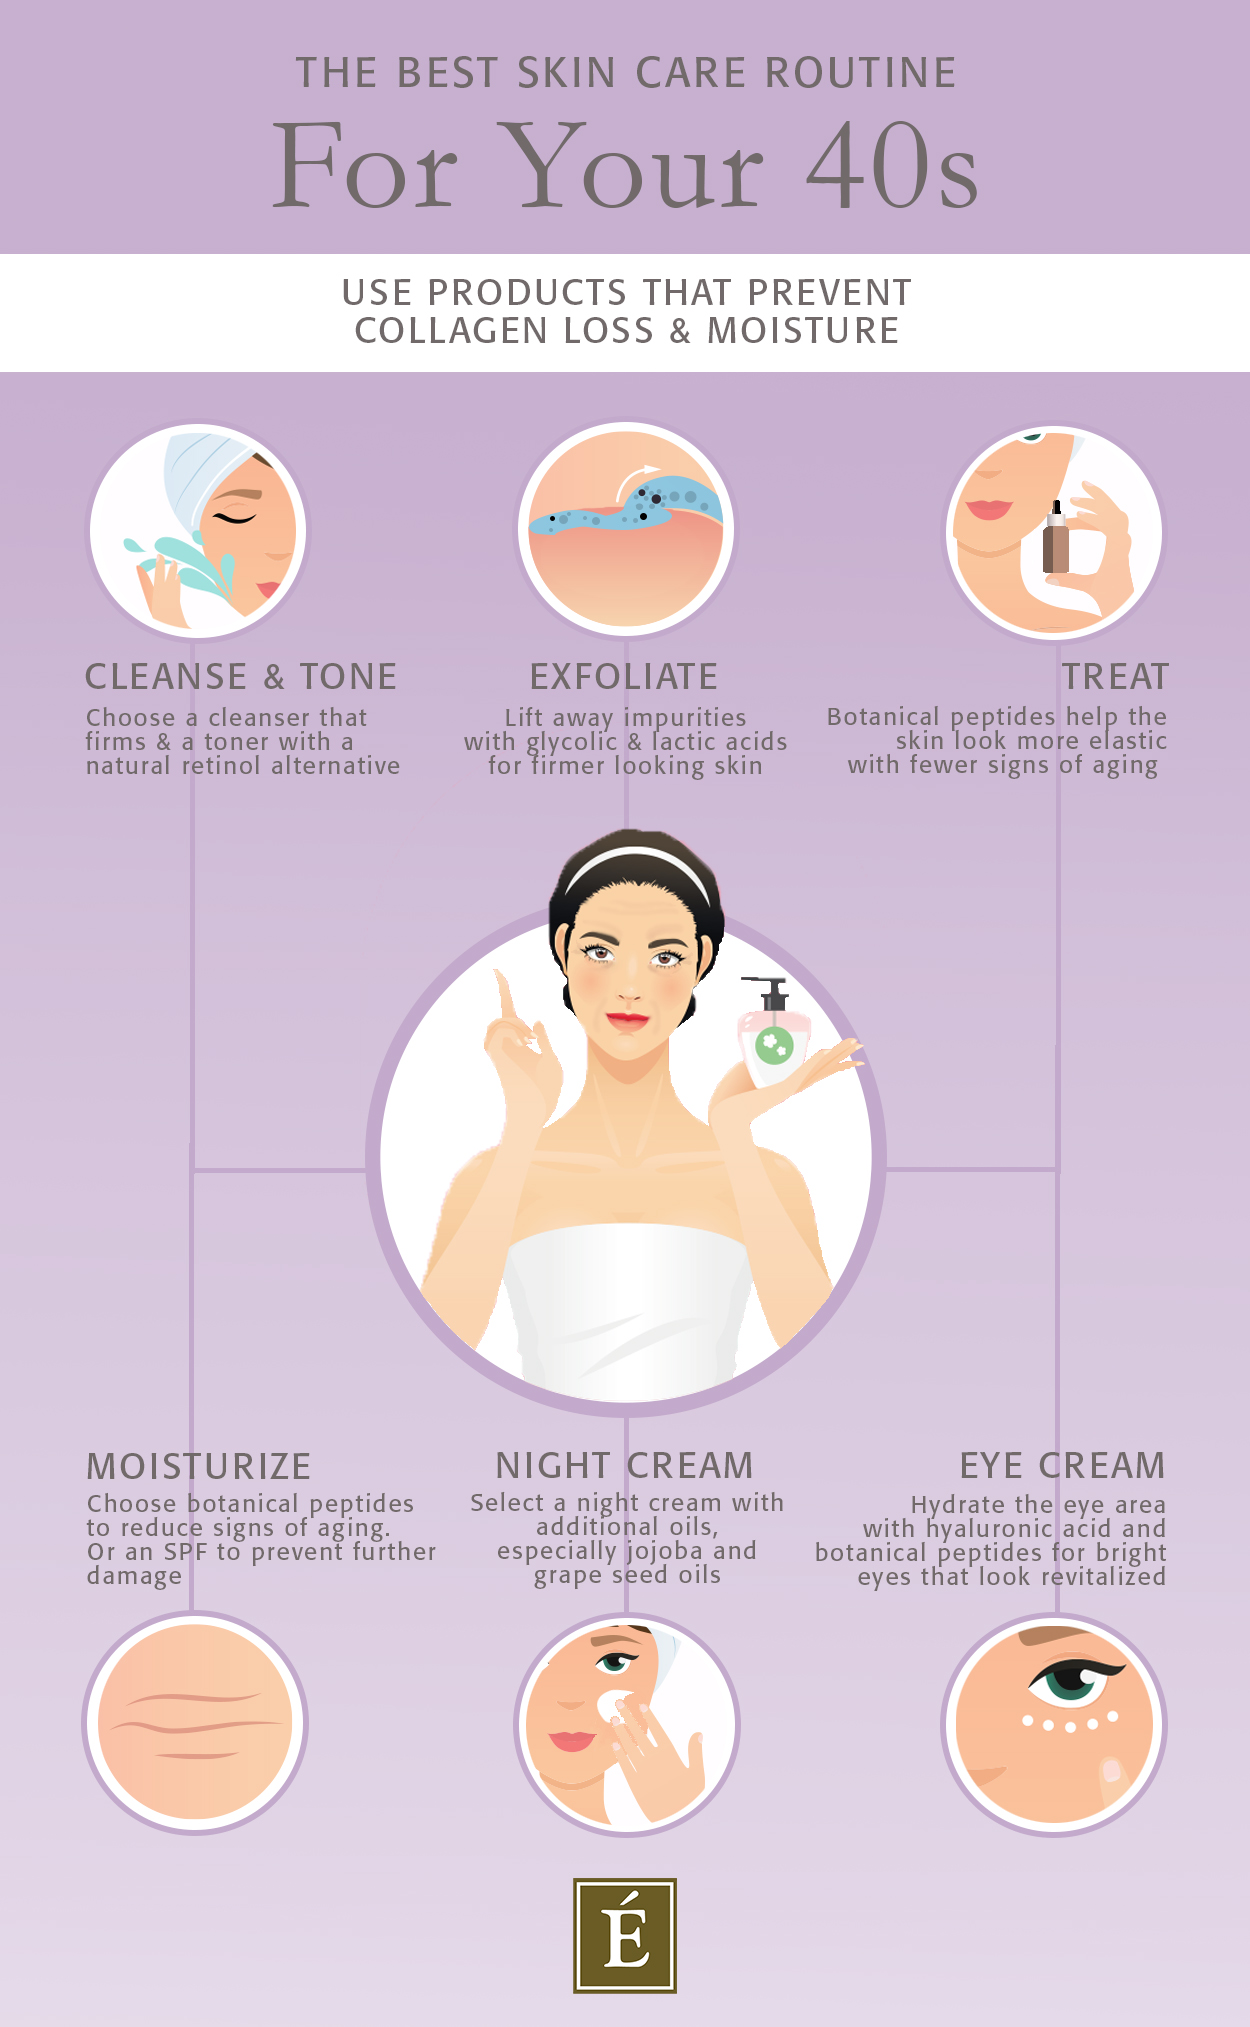 Best Skin Care Routine For Your 40s infographic